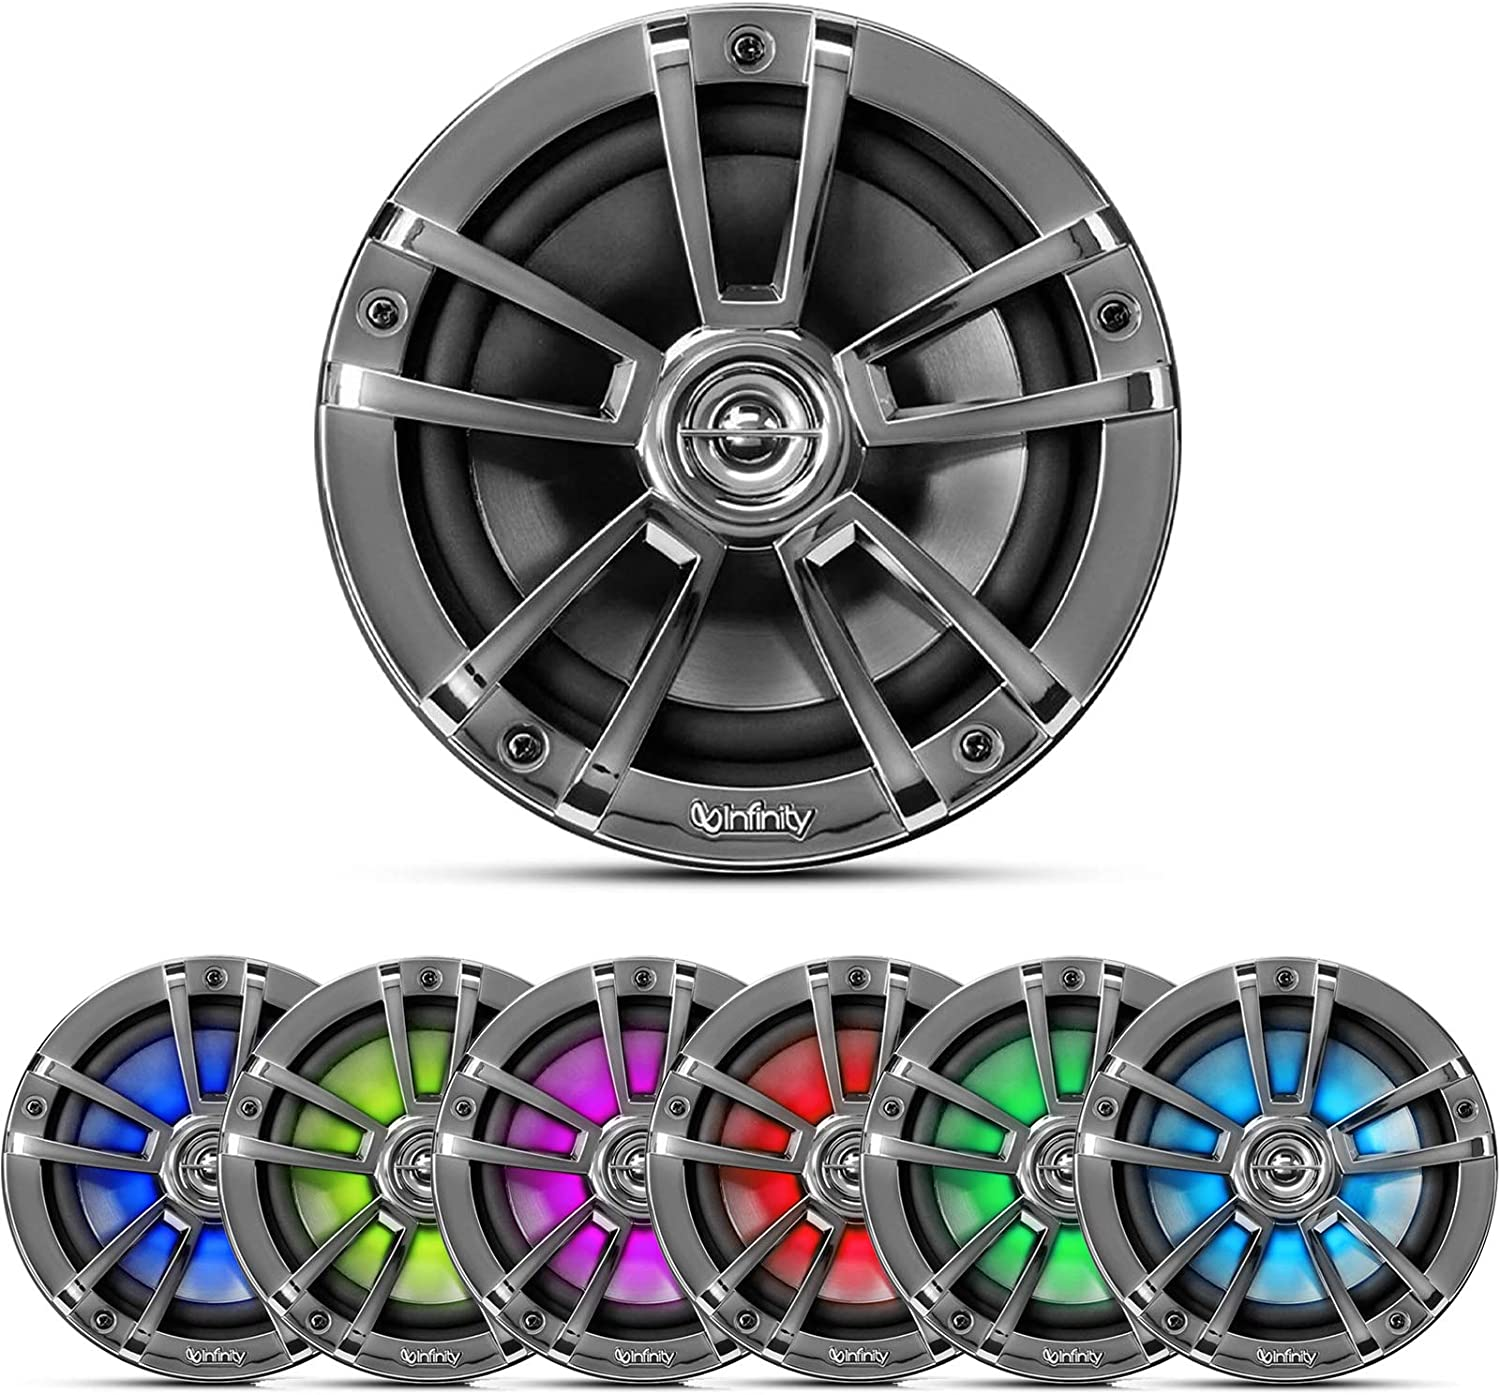 2 Pairs of OEM Replacement 6.5 2-Way Coaxial Marine Audio Multi-Element Boat Speakers with Multi-Color RGB Lighting Option White QTY 4